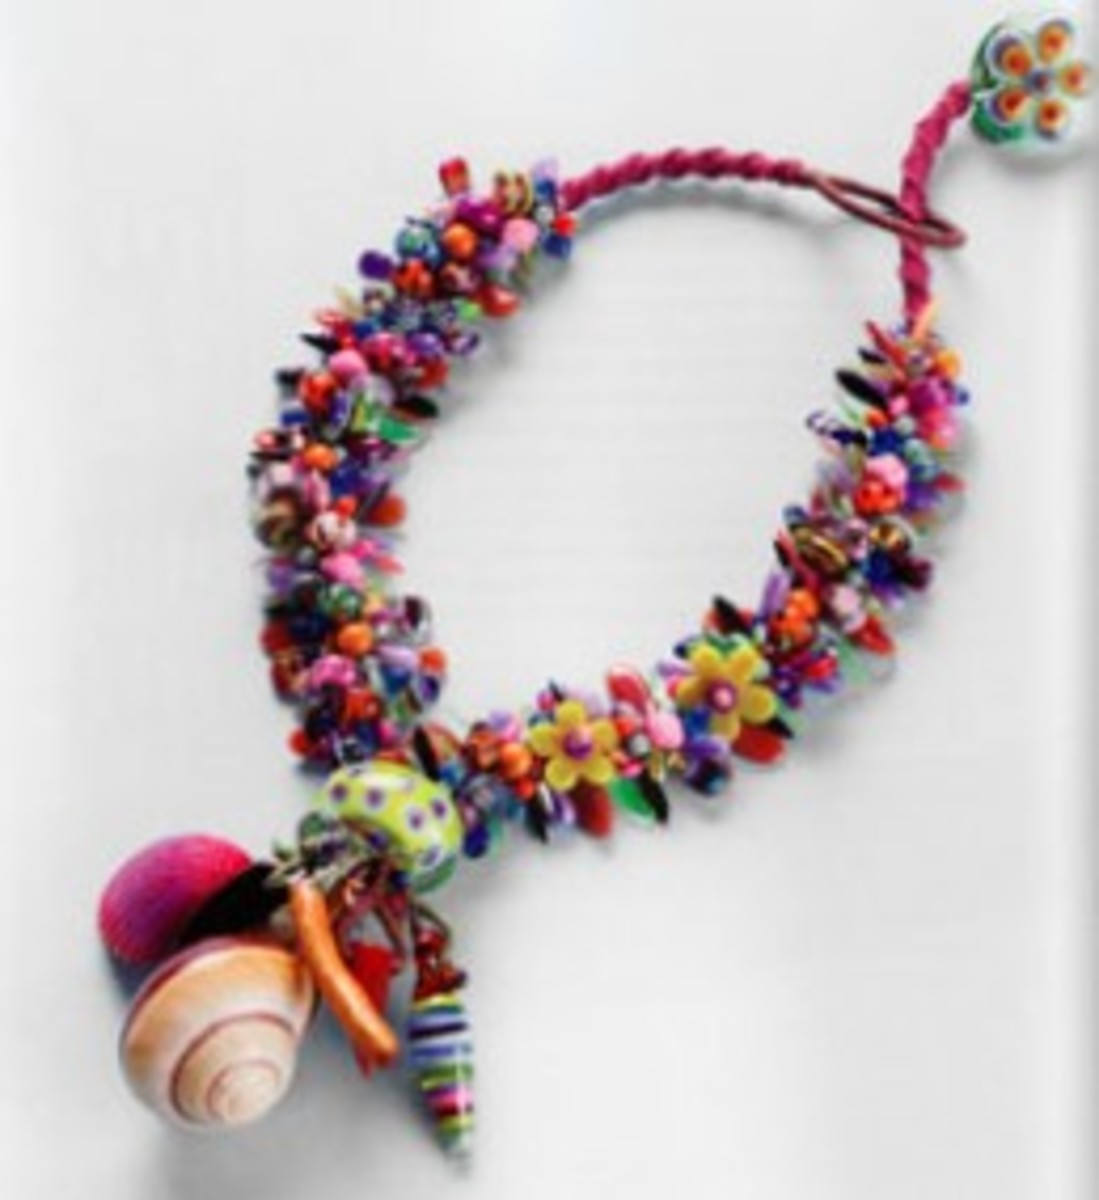 """Another project in the book """"Designing Jewelery With Glass Beads"""". This is a similar project to the spiny knotted bracelet, only done as a necklace with focal beads added. For the adventurous beader!"""